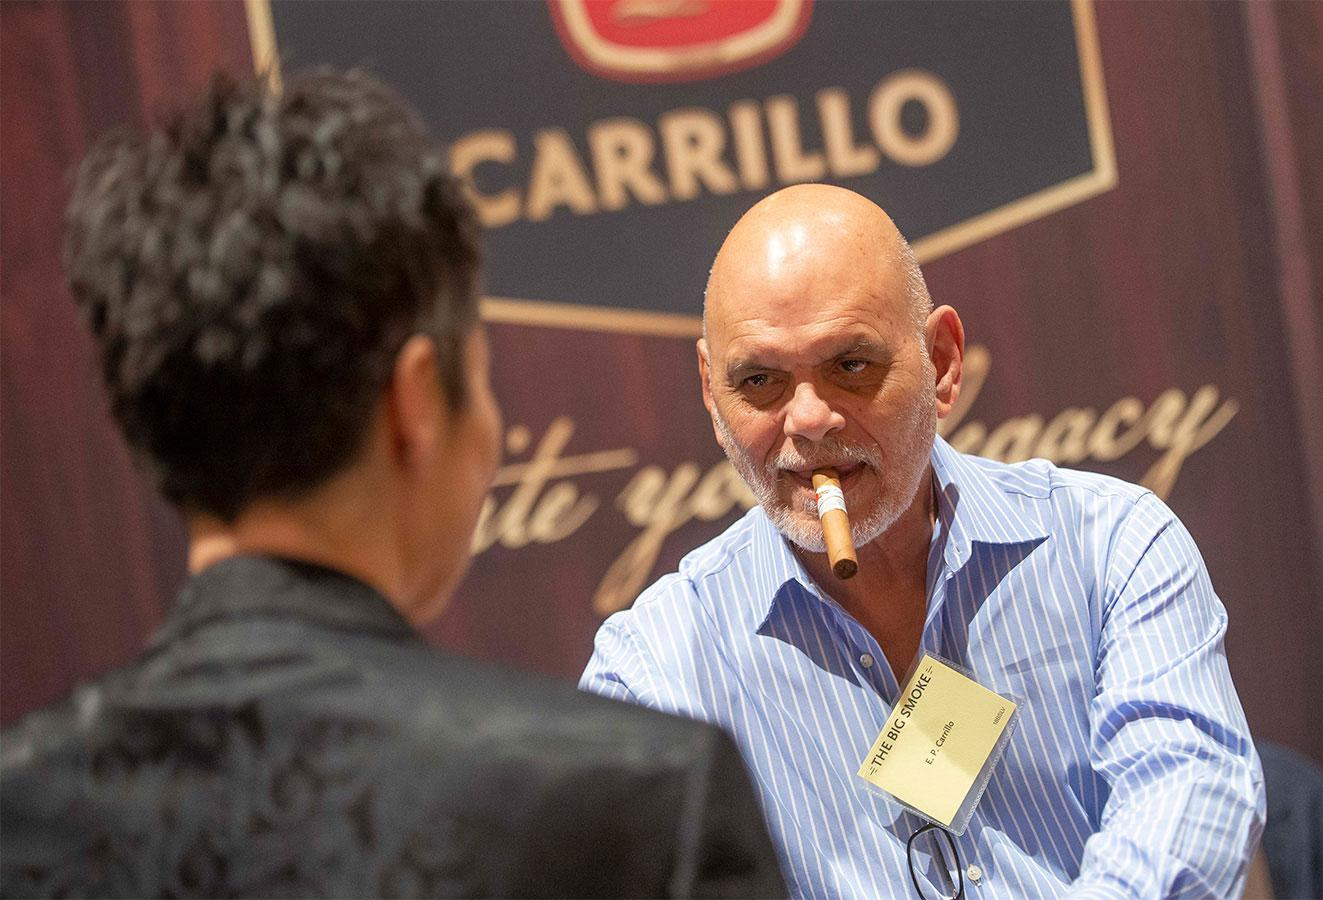 Cigarmaker Ernesto Perez-Carrillo greets fans at the E.P. Carrillo booth.